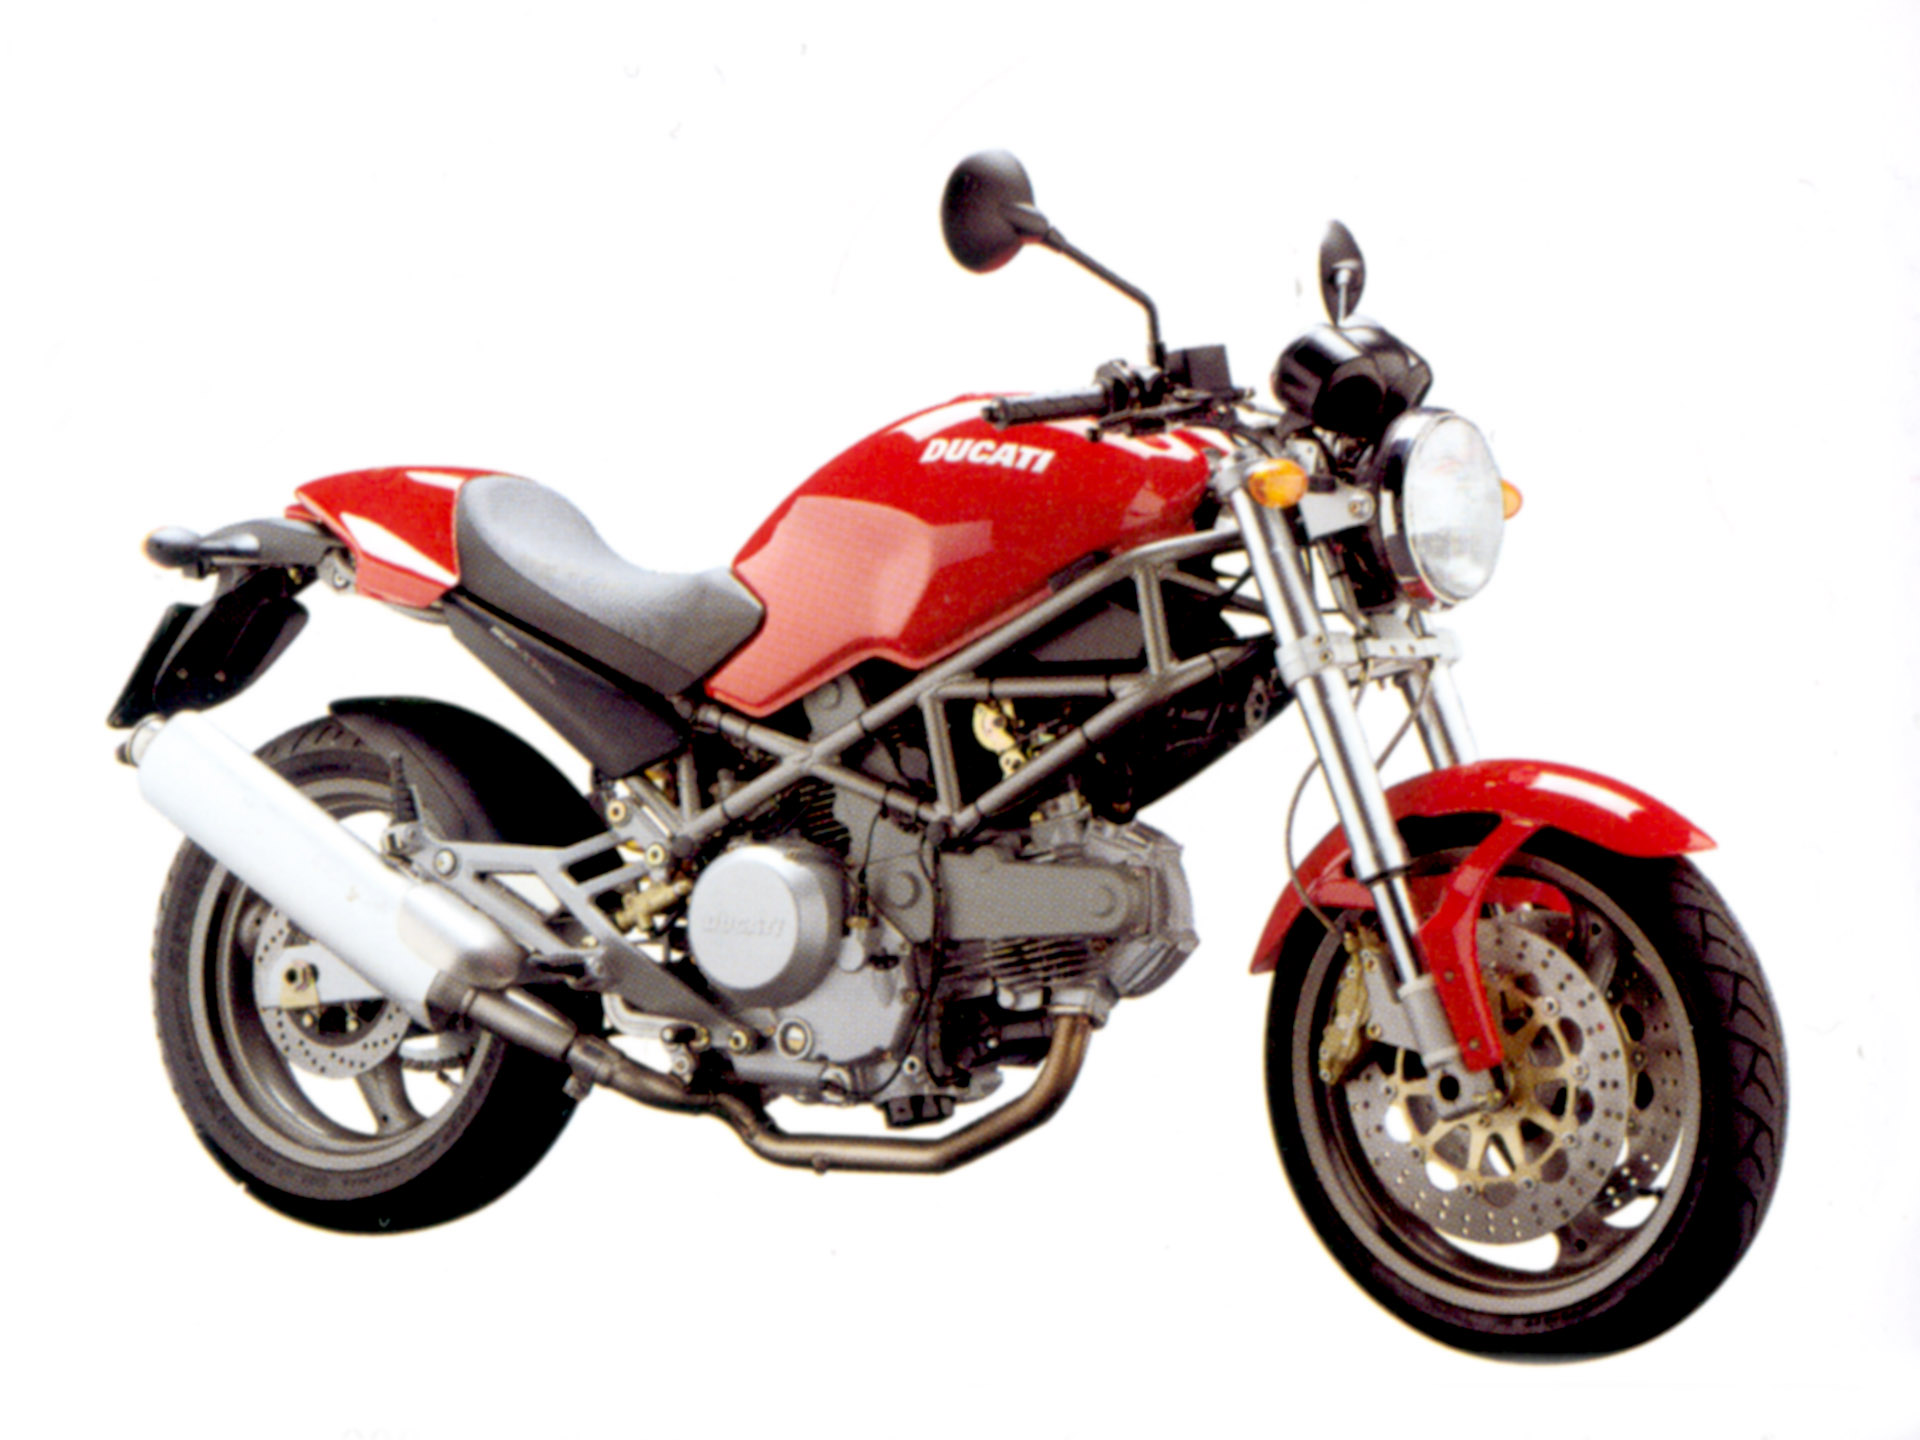 Ducati Monster 620 S 2004 wallpapers #11363